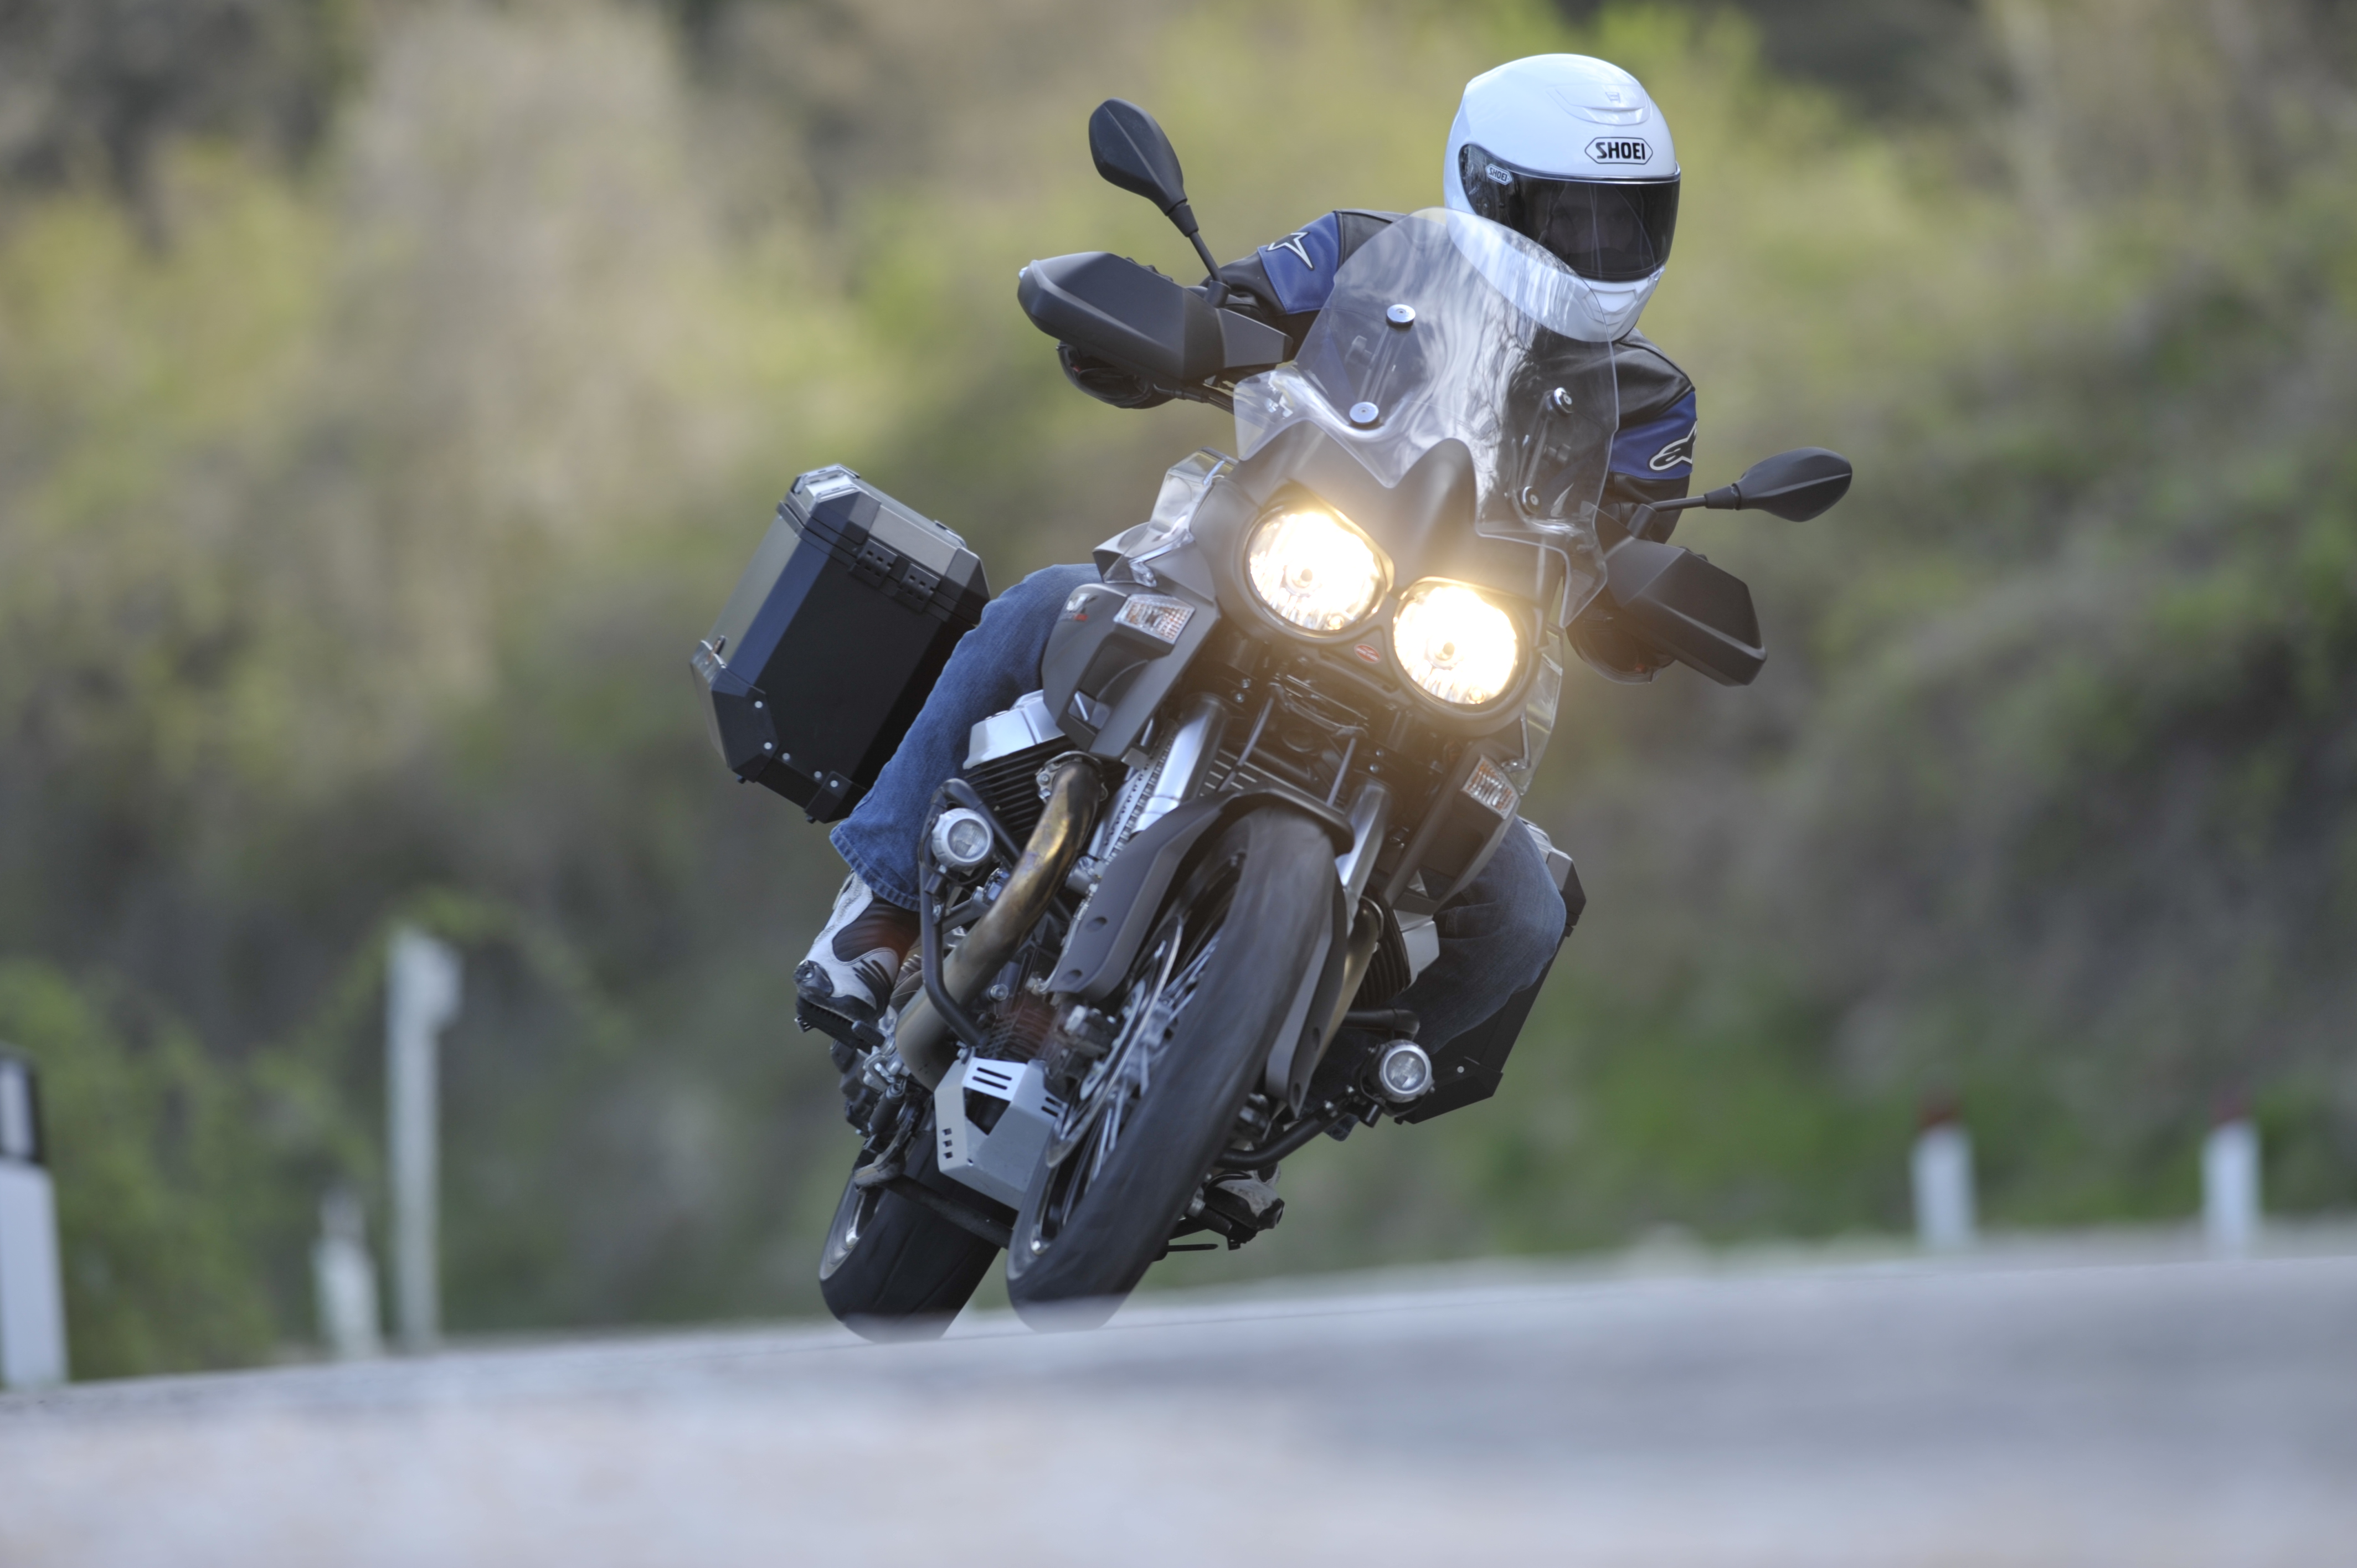 First Ride: Moto Guzzi Stelvio 1200 8V and Stelvio NTX